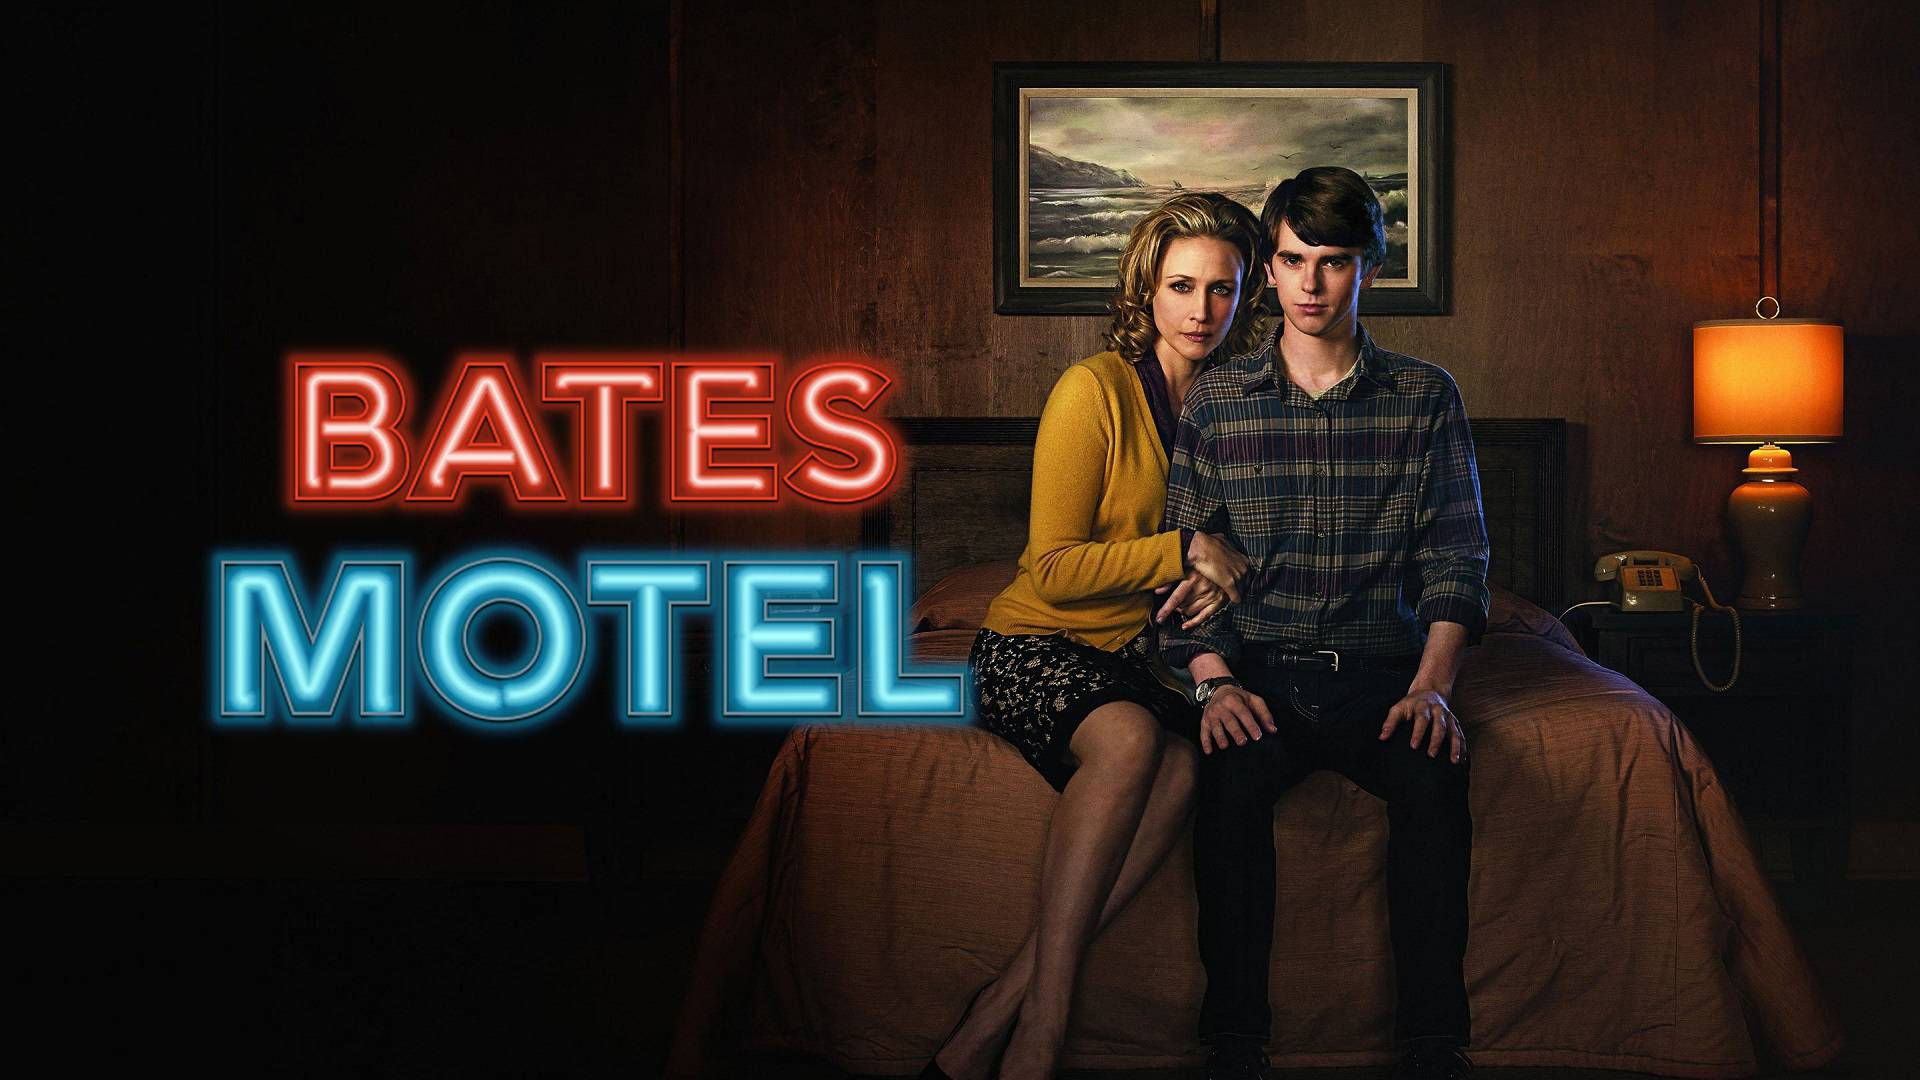 Bates Motel Wallpaper